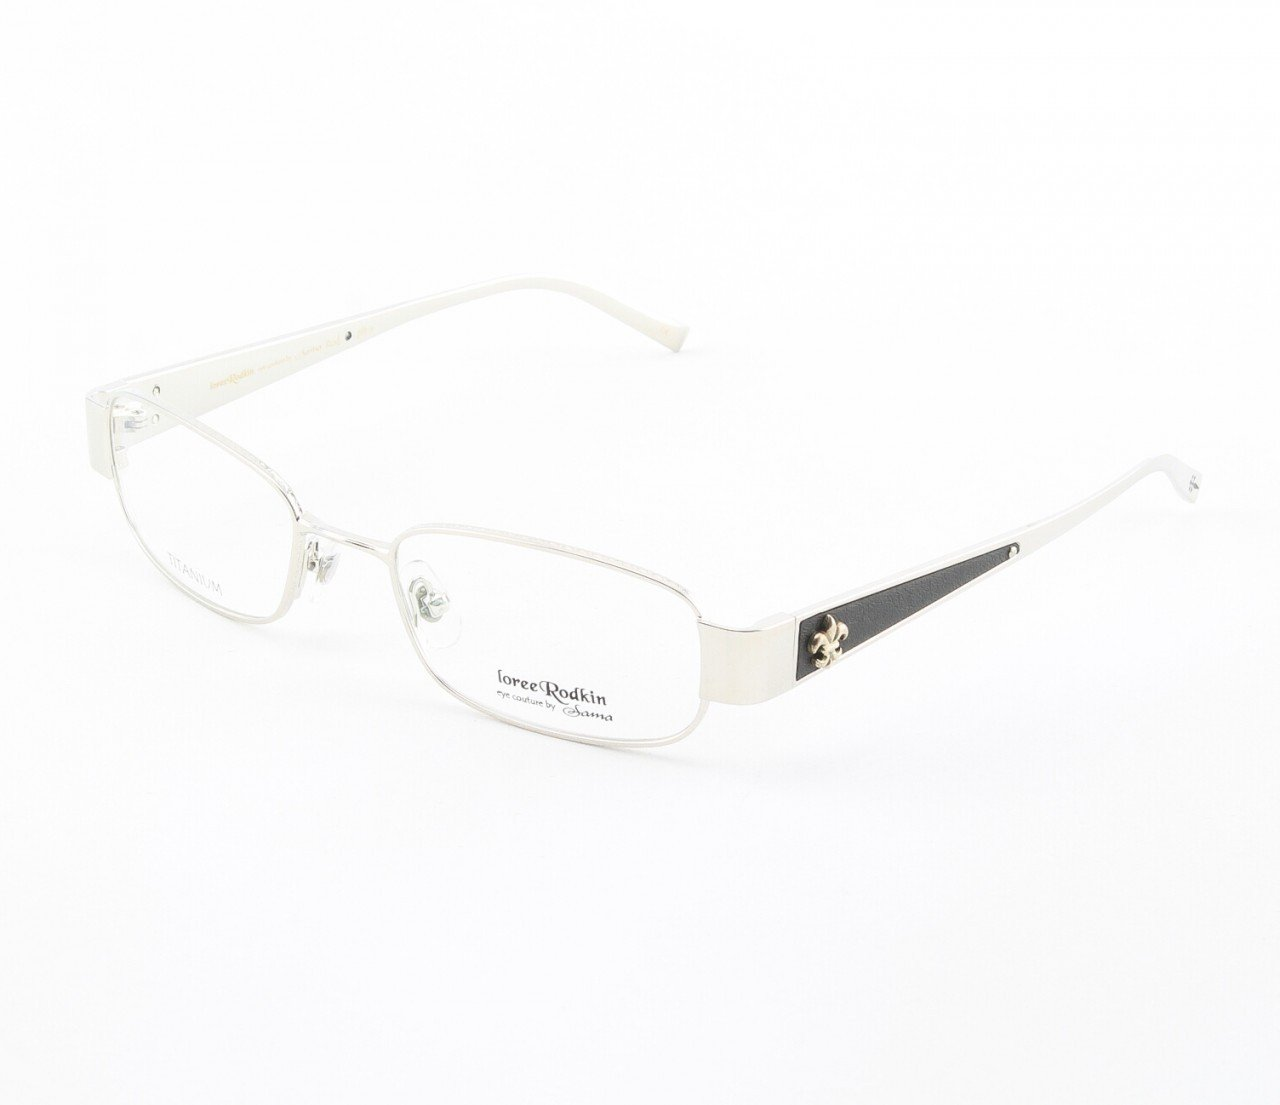 Loree Rodkin Rod Eyeglasses by Sama Col. Platinum with Clear Lenses, Leather and Sterling Silver